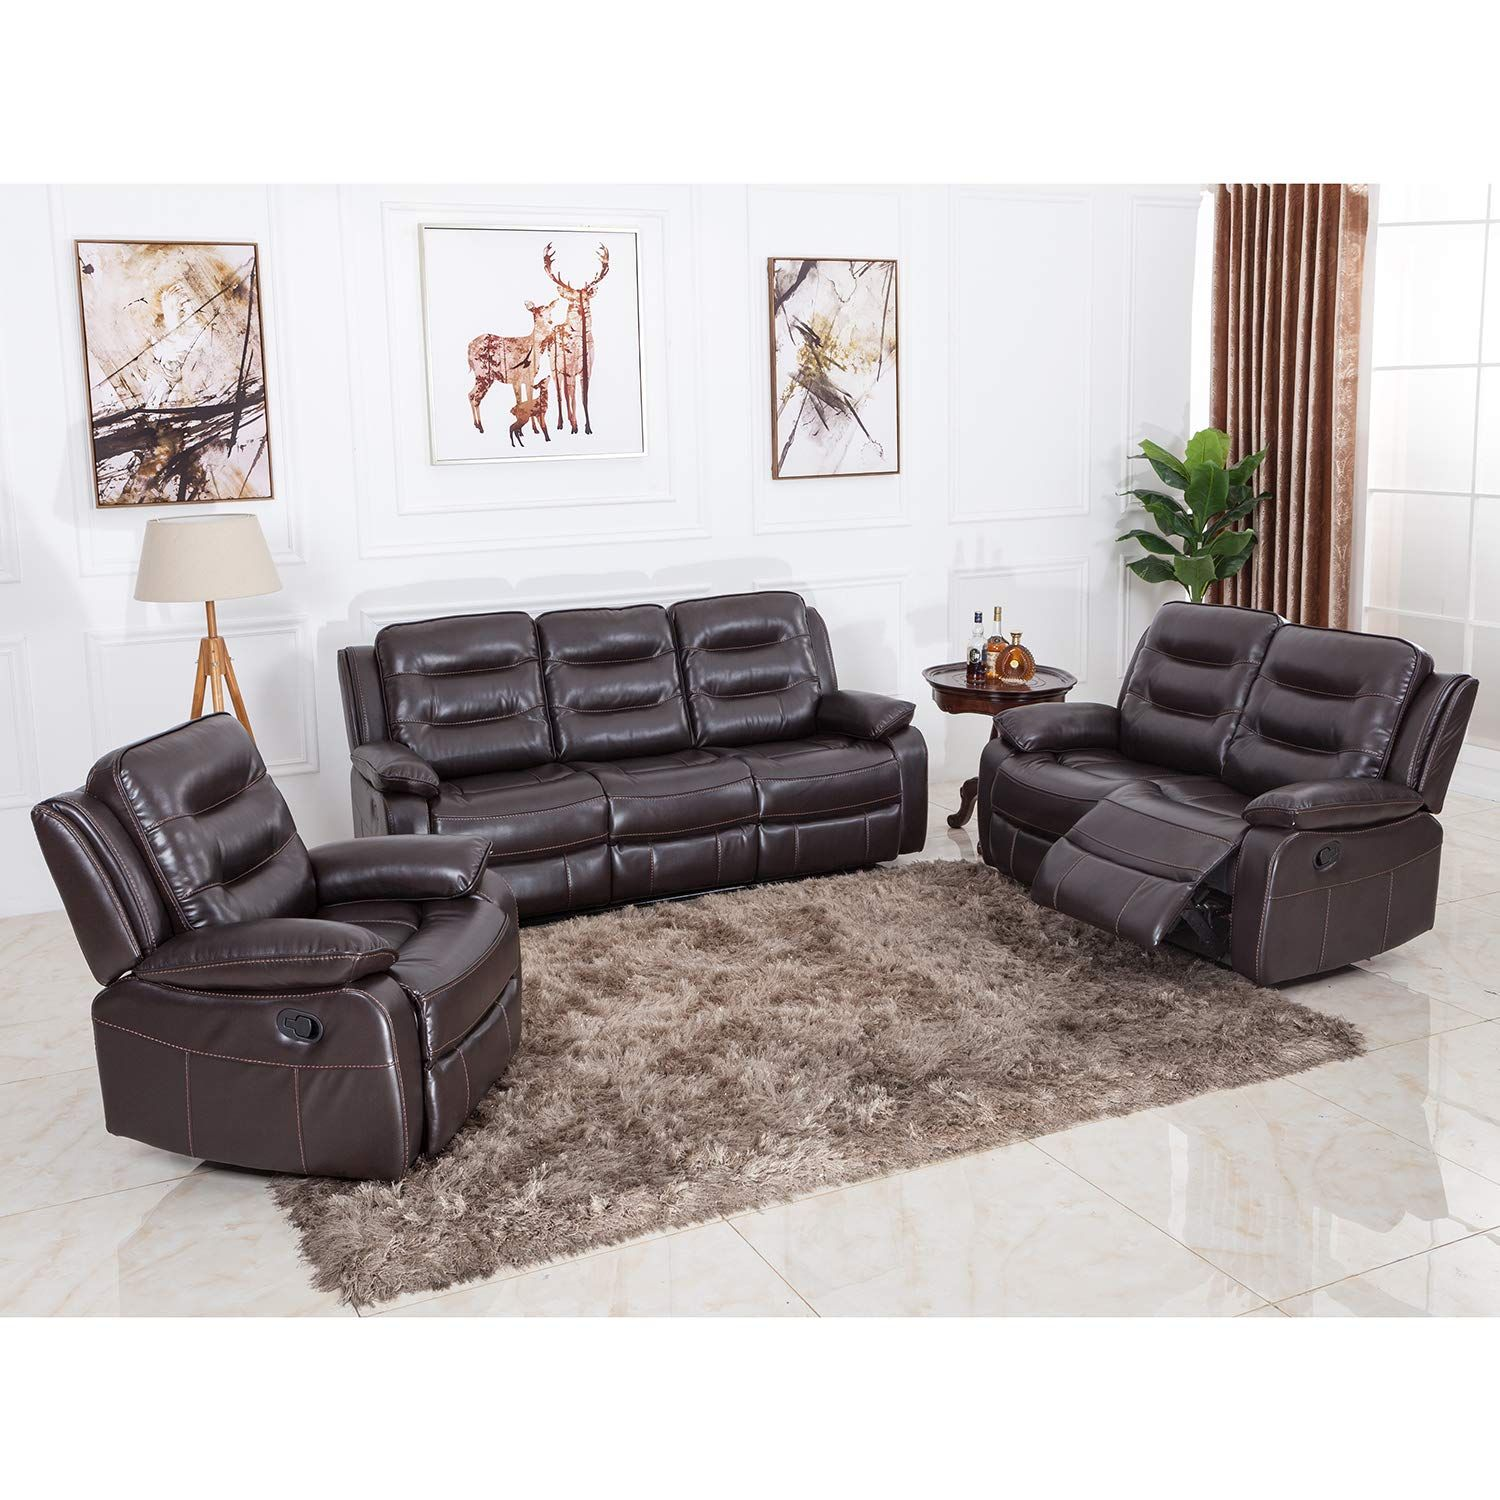 Excellent Juntoso Leather Sofa And Reclining Stretch Chair Loveseat Caraccident5 Cool Chair Designs And Ideas Caraccident5Info